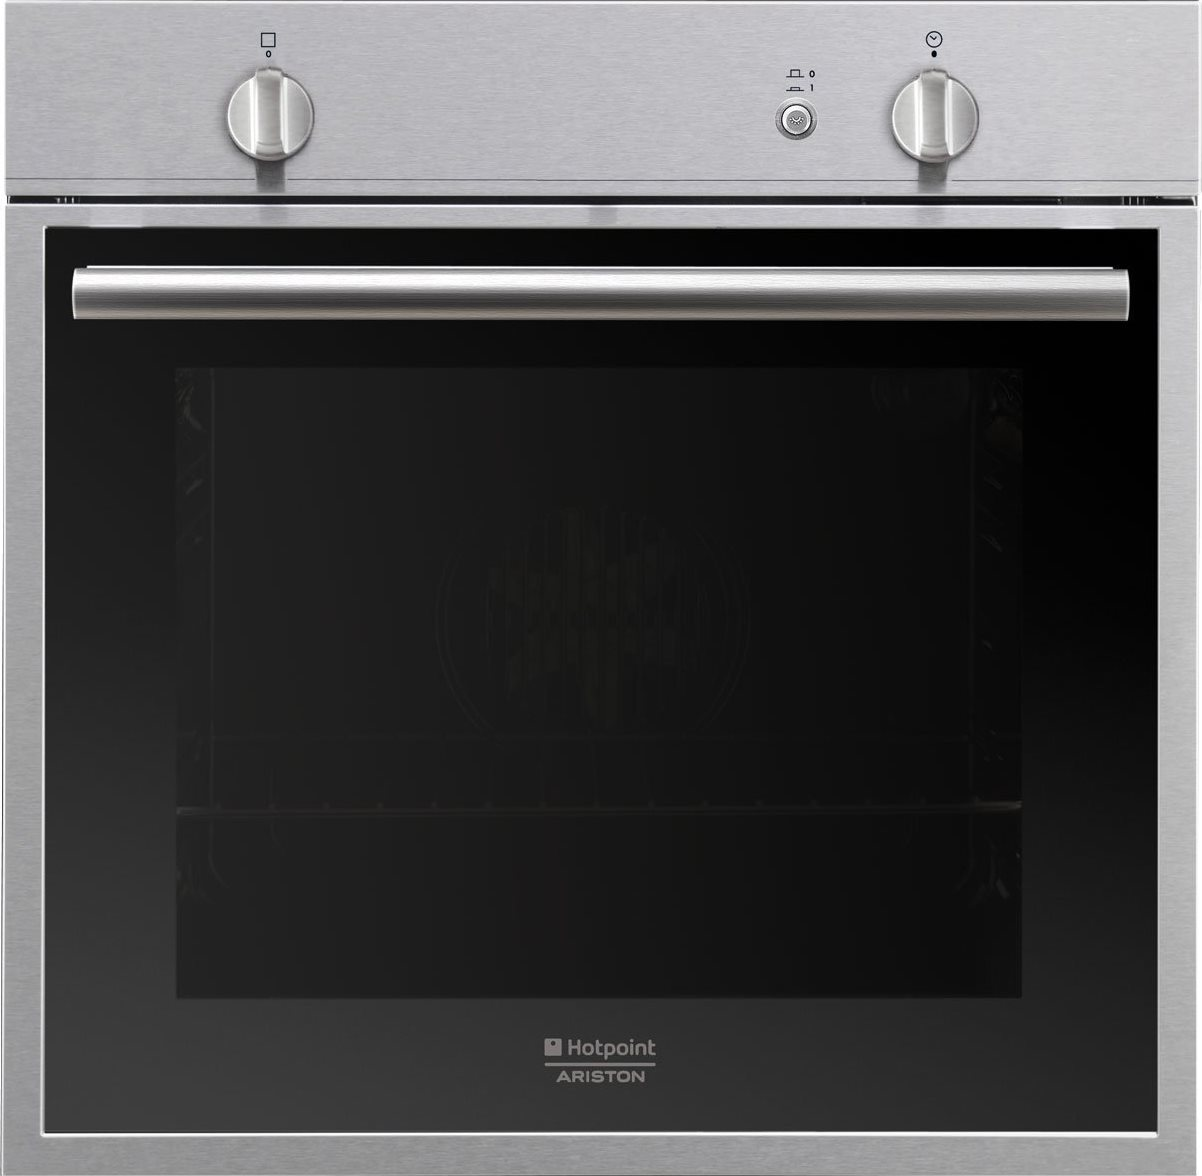 Forno ariston fk g ix ha s forno da incasso a gas con - Forno a incasso ariston ...